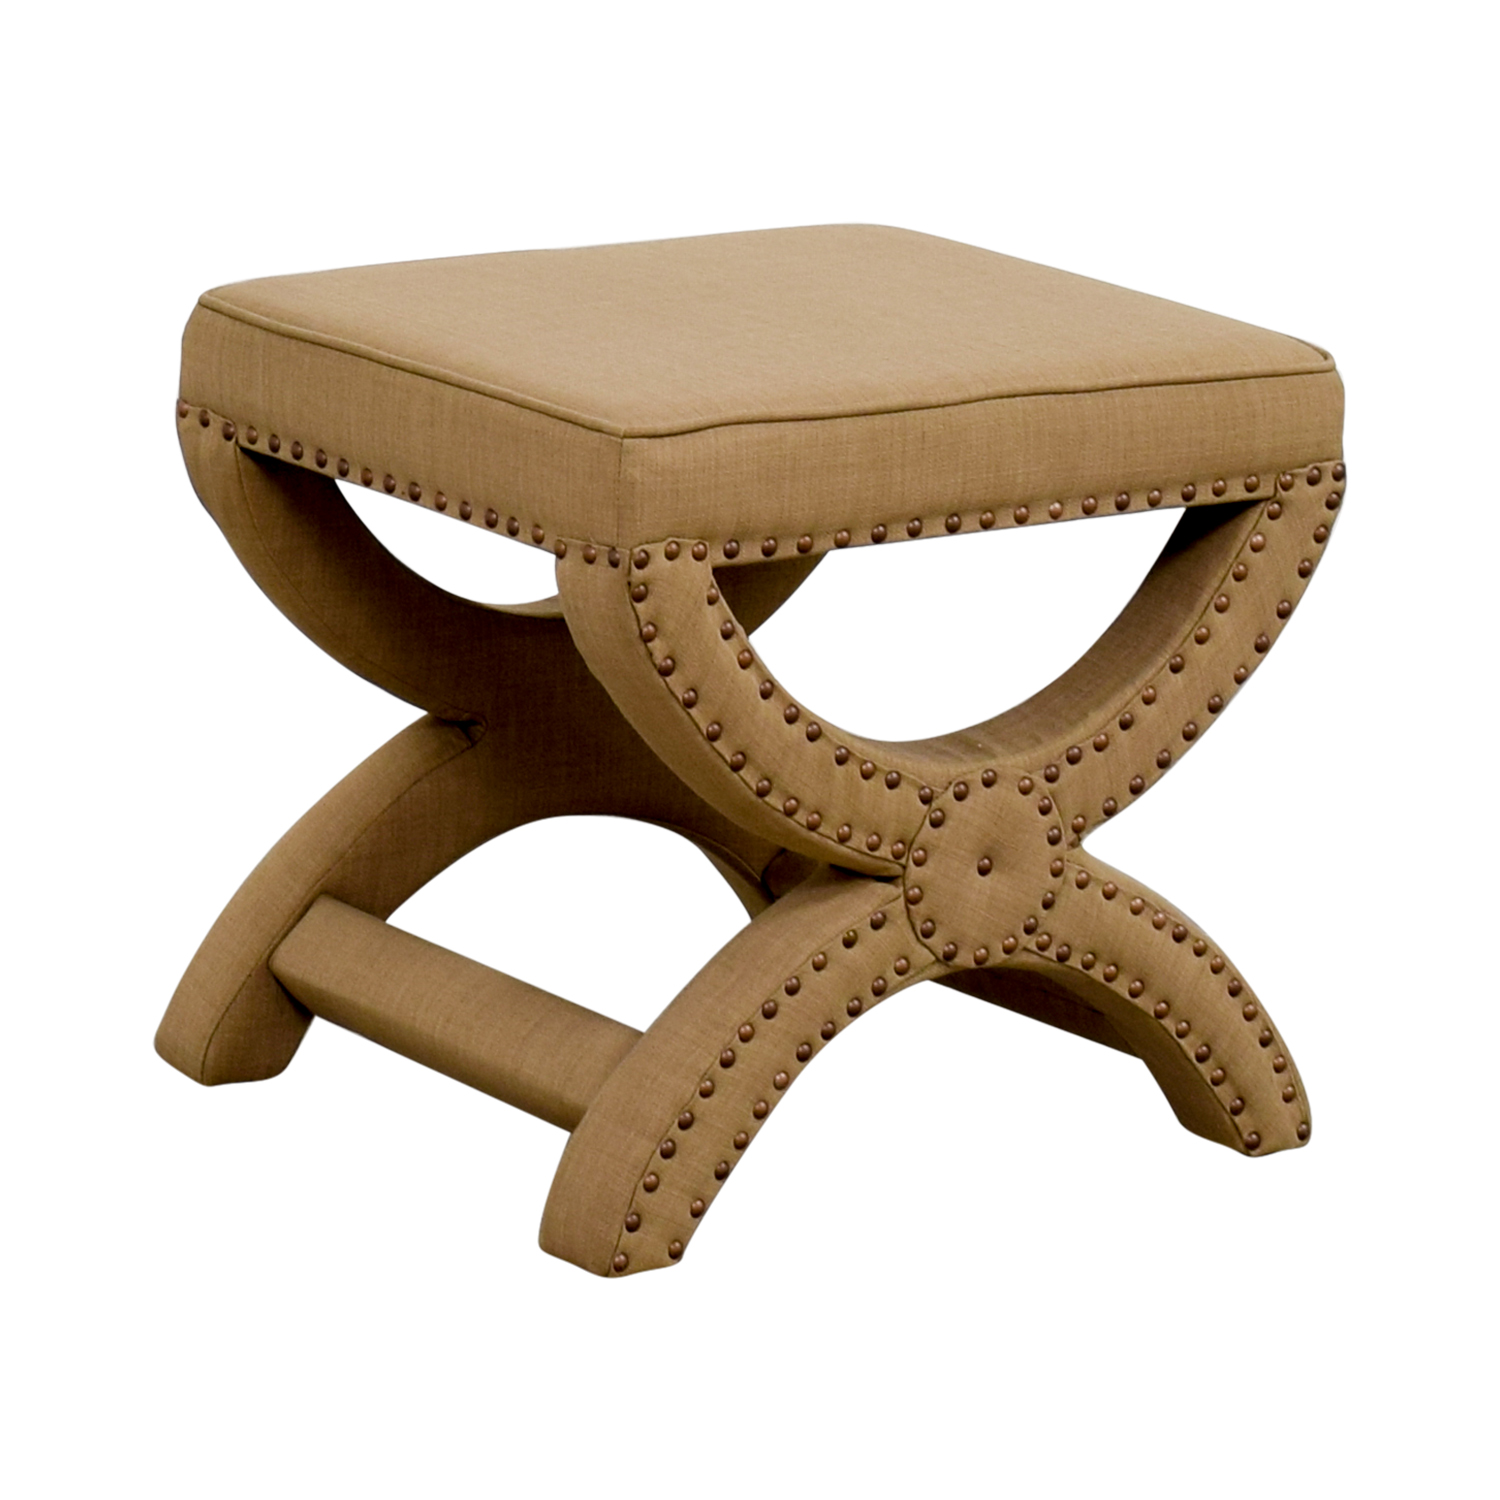 Abbyson Abbyson Studded Stool tan